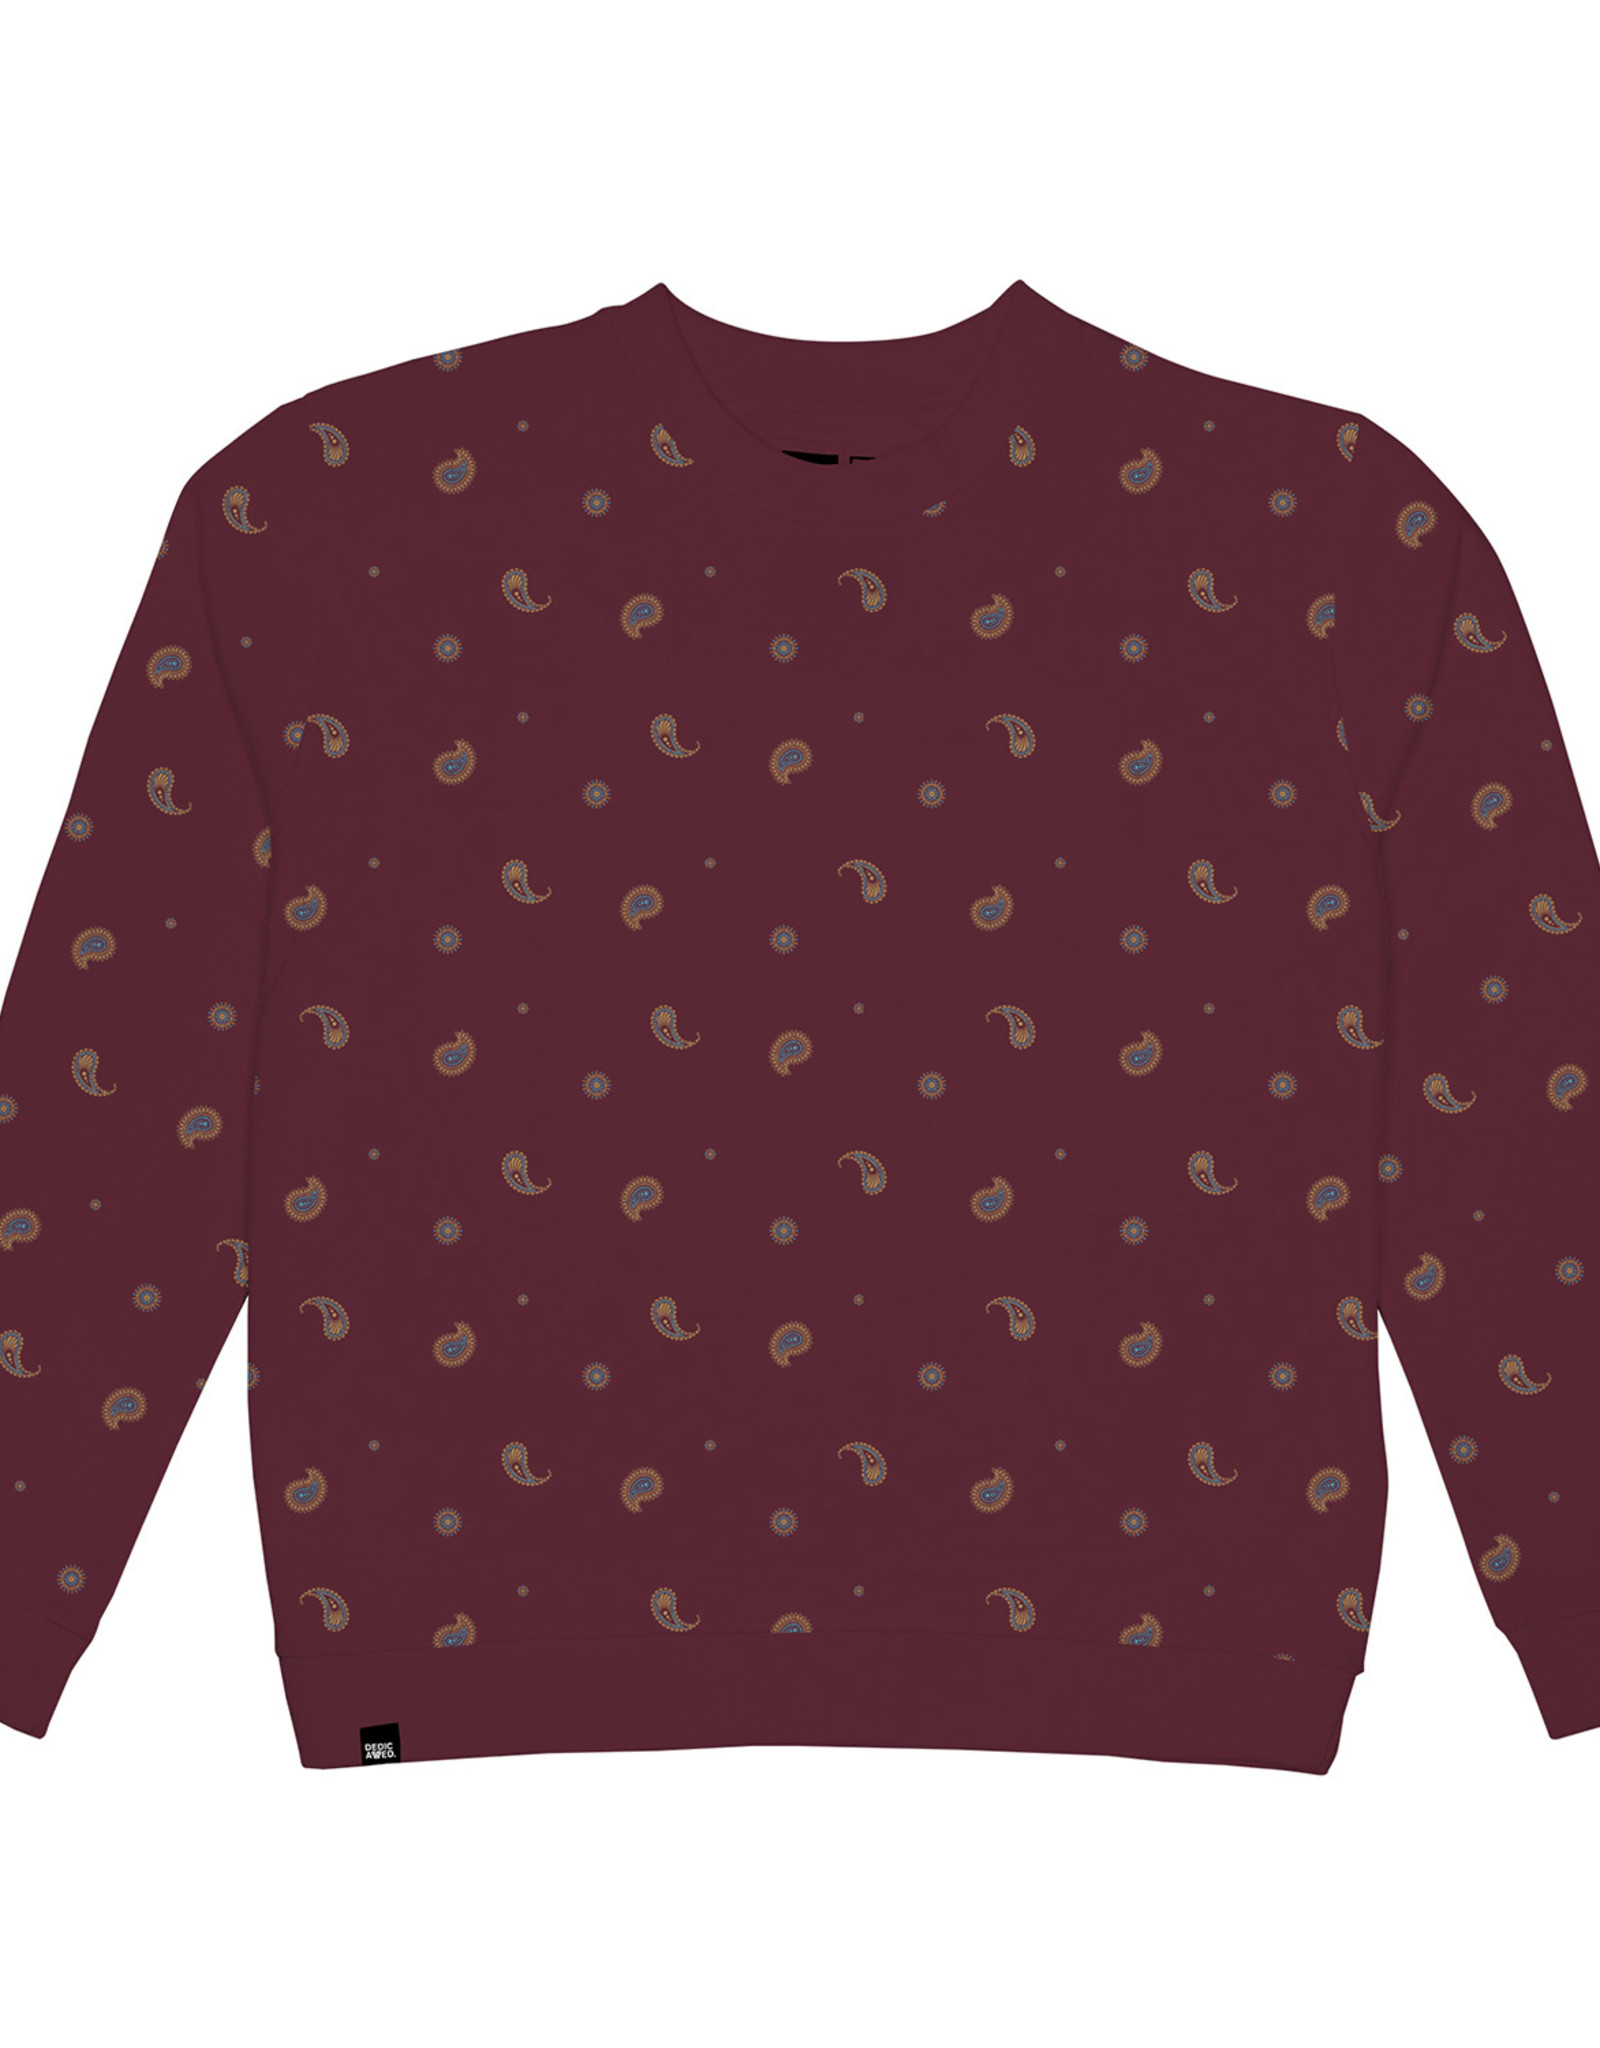 Dedicated SWEATSHIRT PAISLEY BORDEAUX